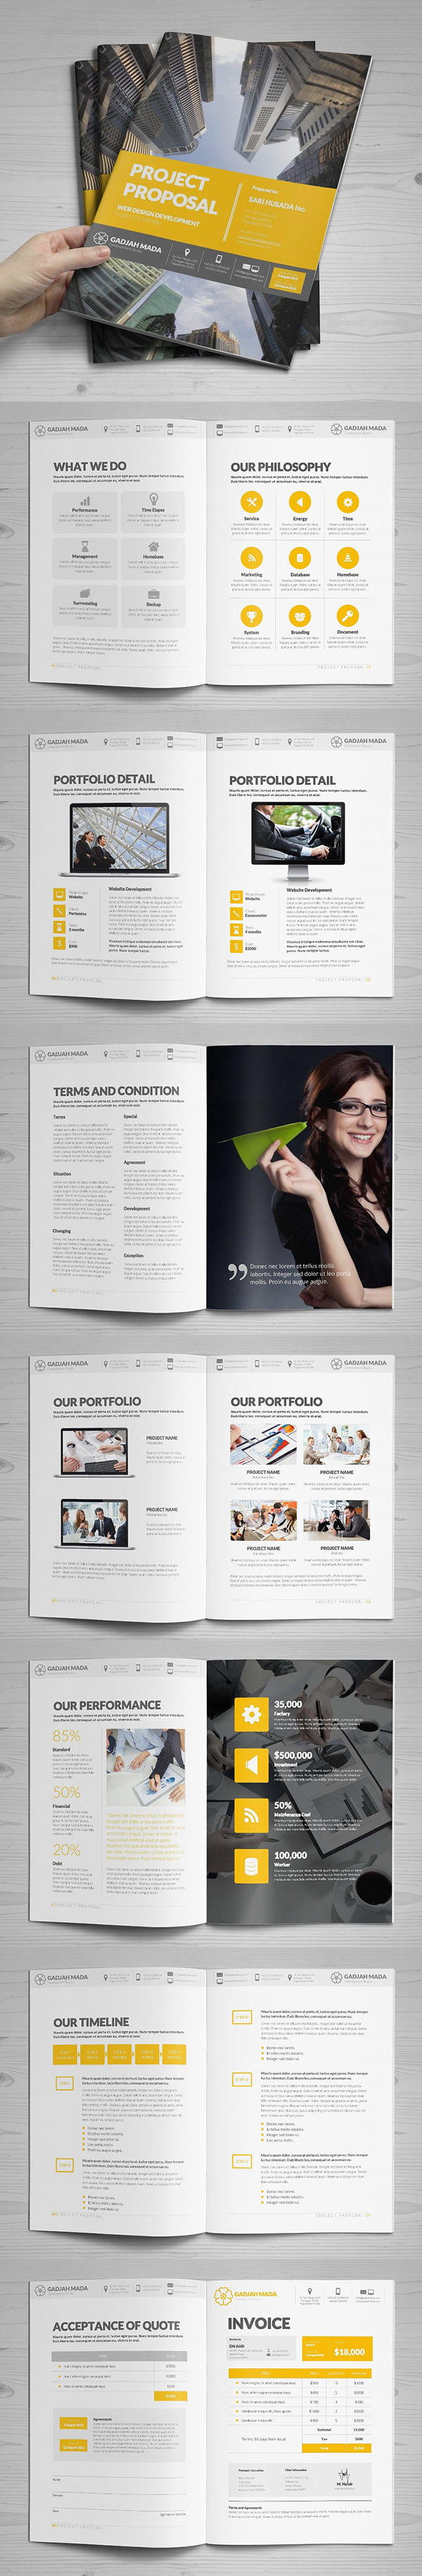 Professional Business Proposal Templates Design - 14